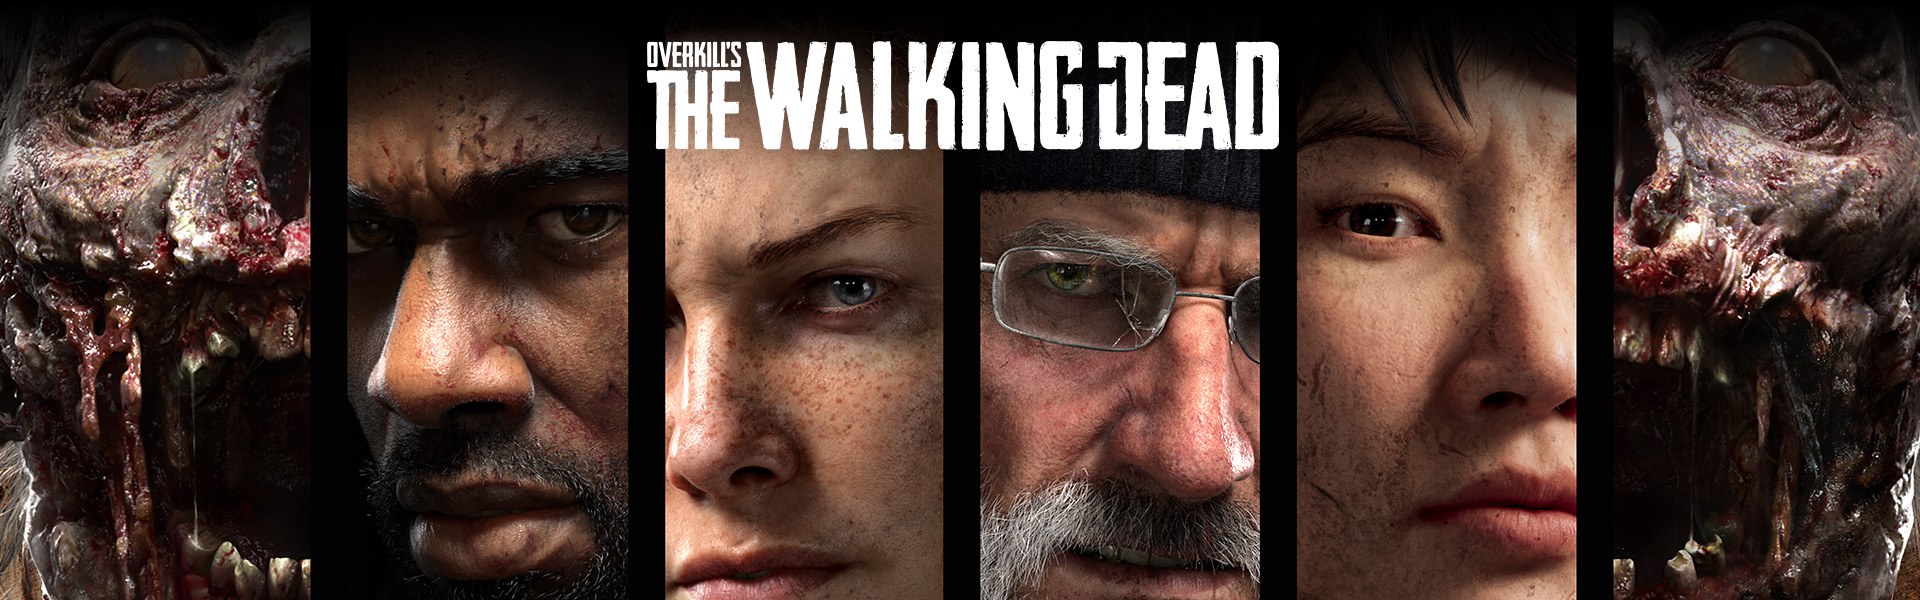 Overkill's the walking dead, Closeup view of four human and two zombie faces